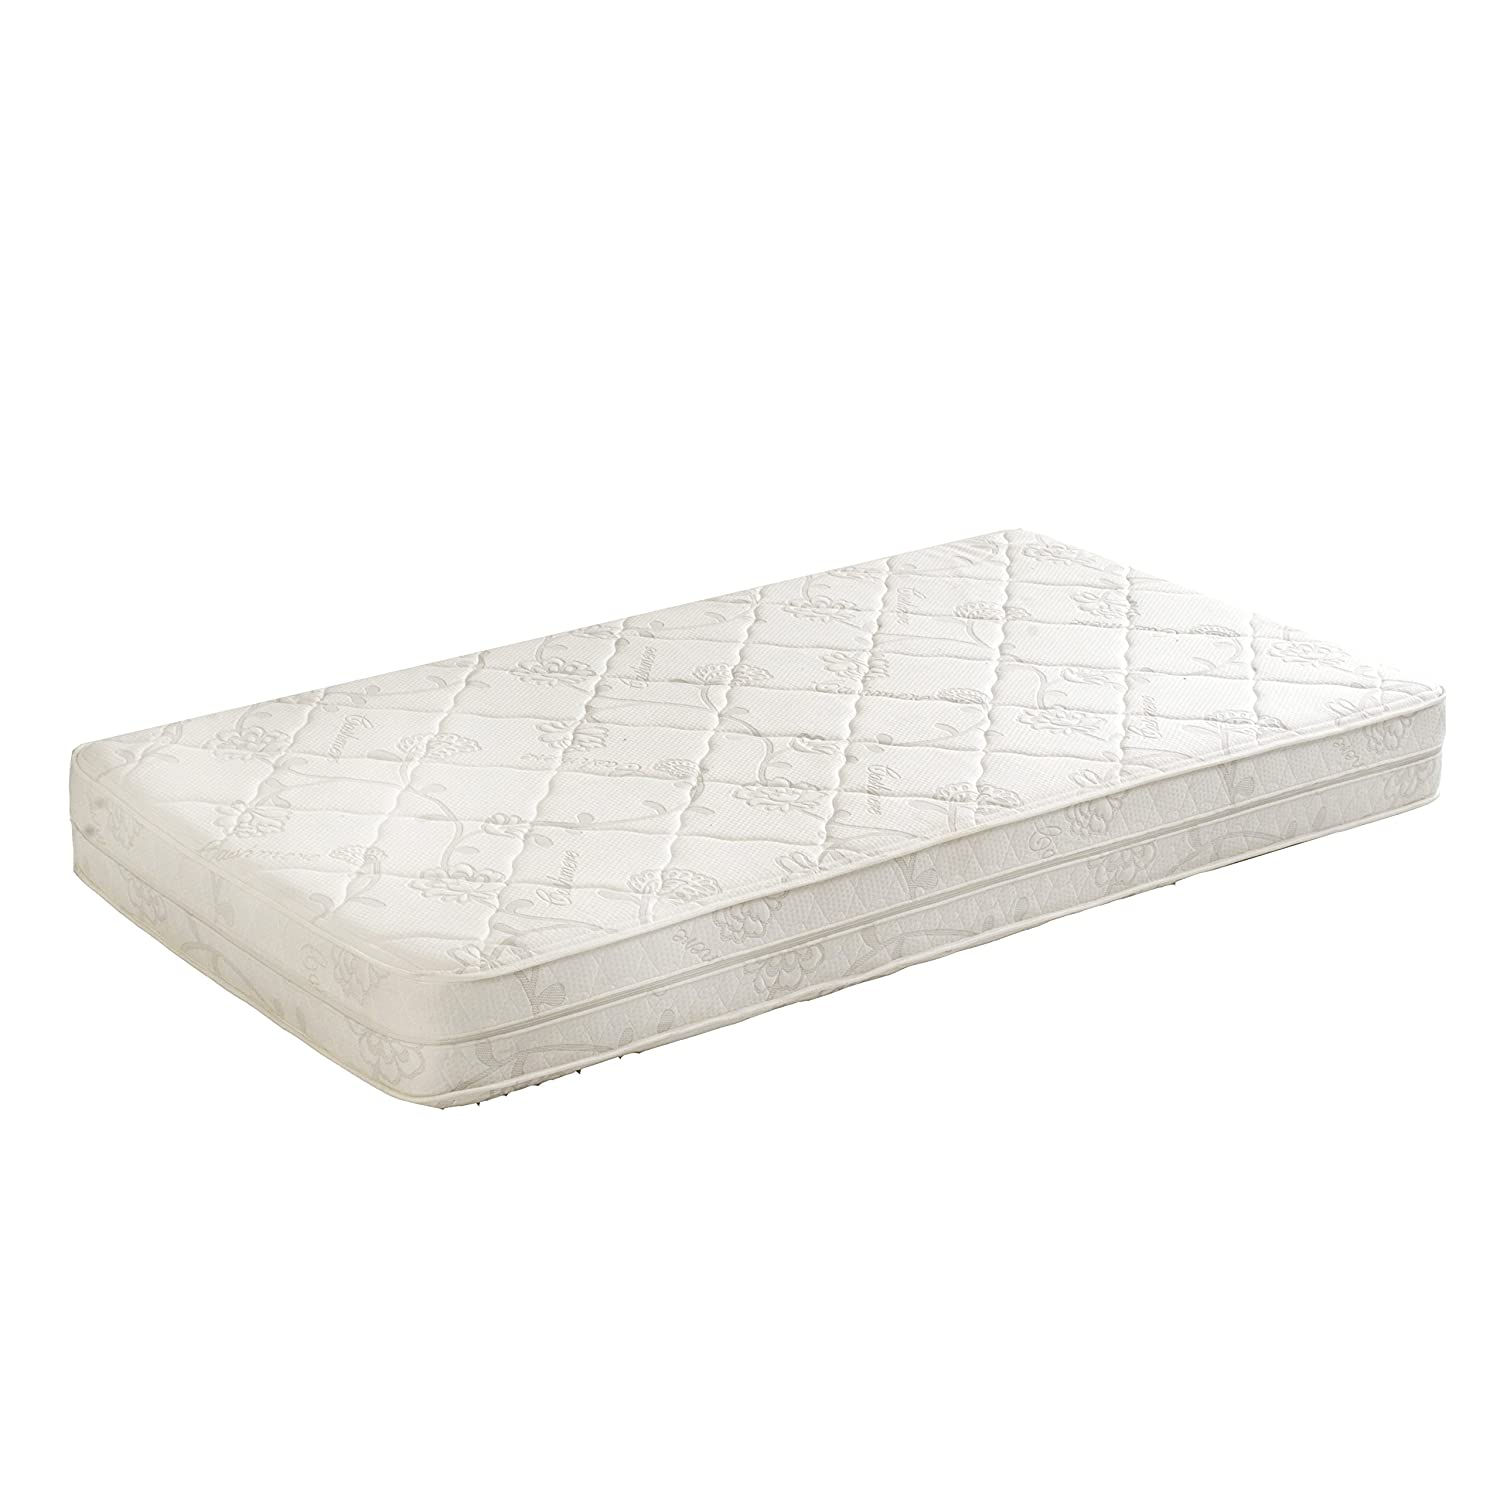 competitive price d10da 209e4 Amazon.com: Memory Foam Mattress RV 48